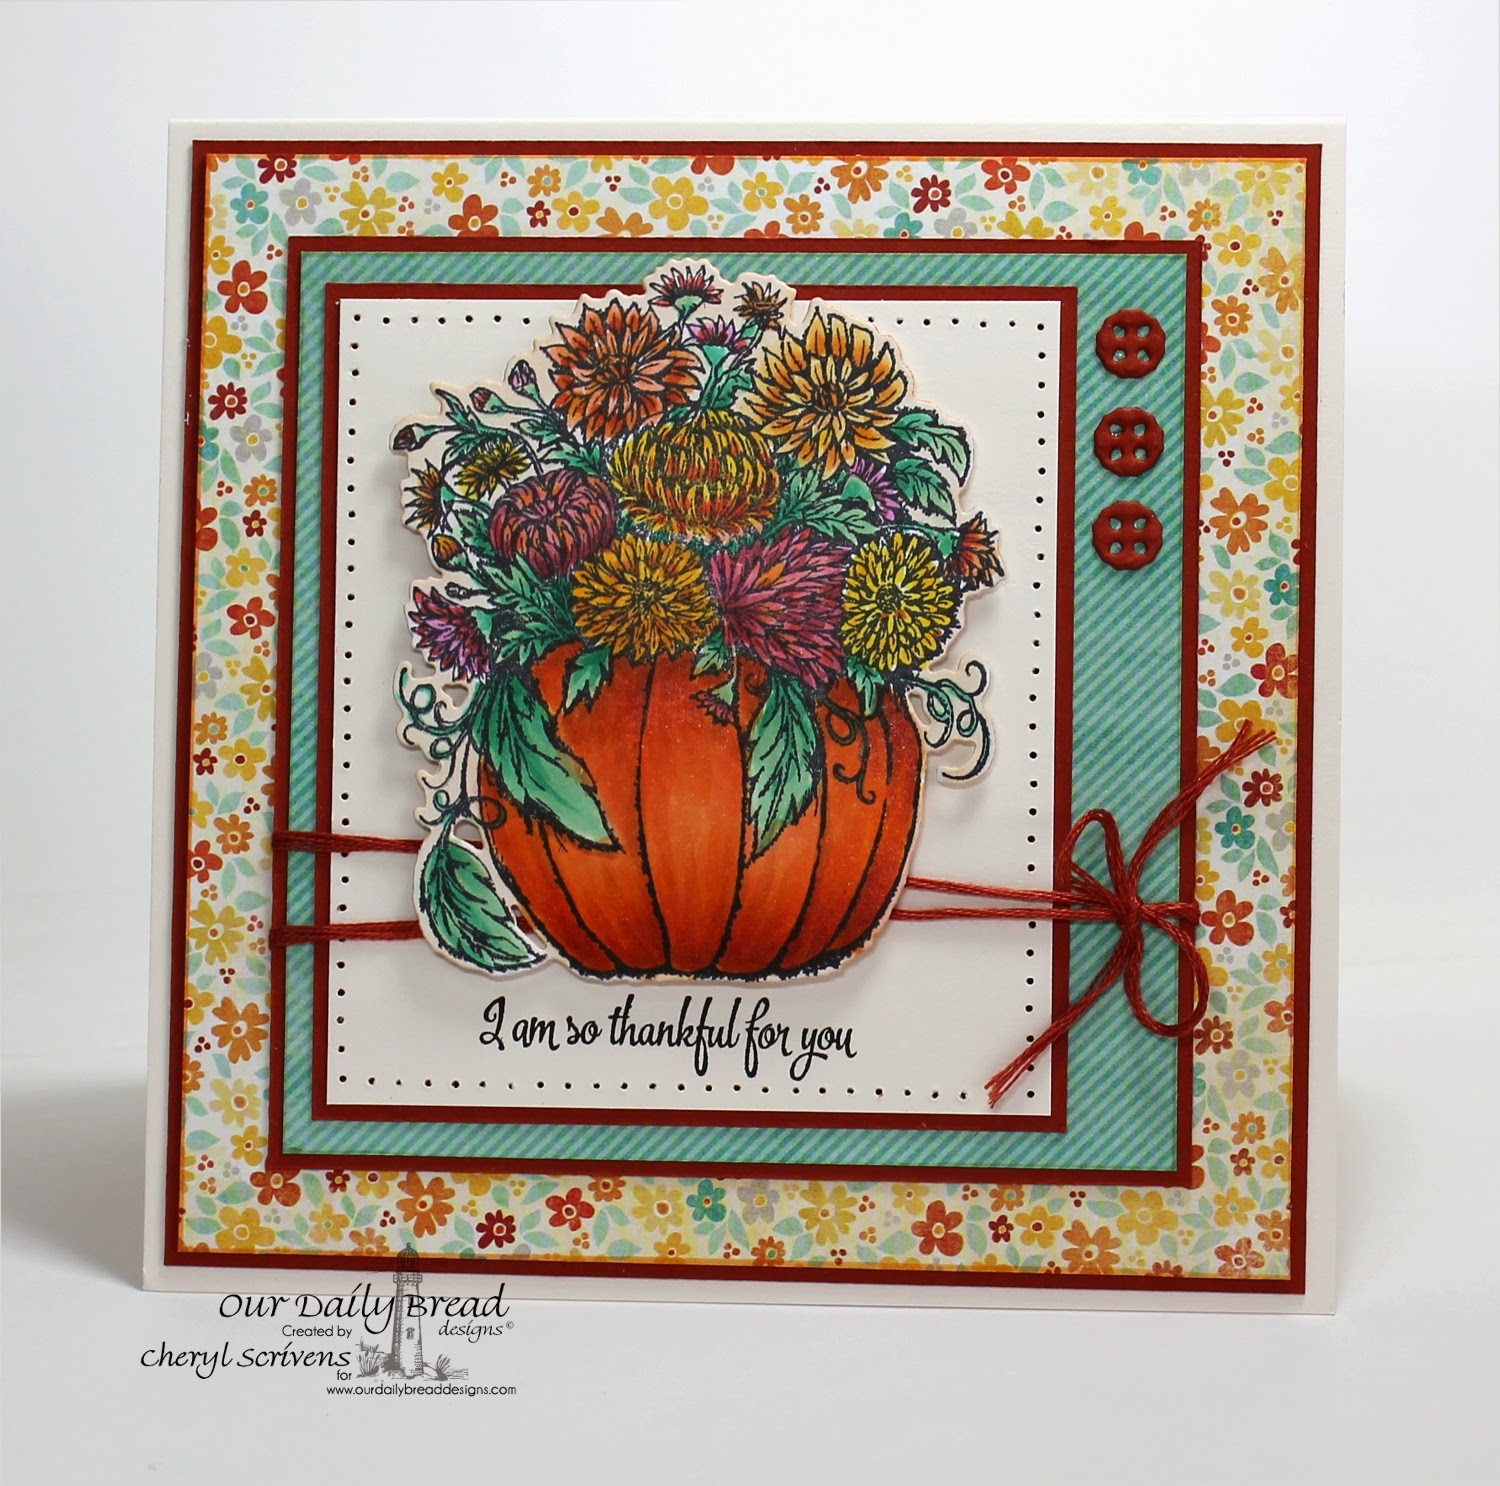 Our Daily Bread Designs, ODBDSLC214, Fall Pumpkin Flowers, Pumpkin & Flowers die, Doily Blessings, Doily dies, CherylQuilts, Designed by Cheryl Scrivens